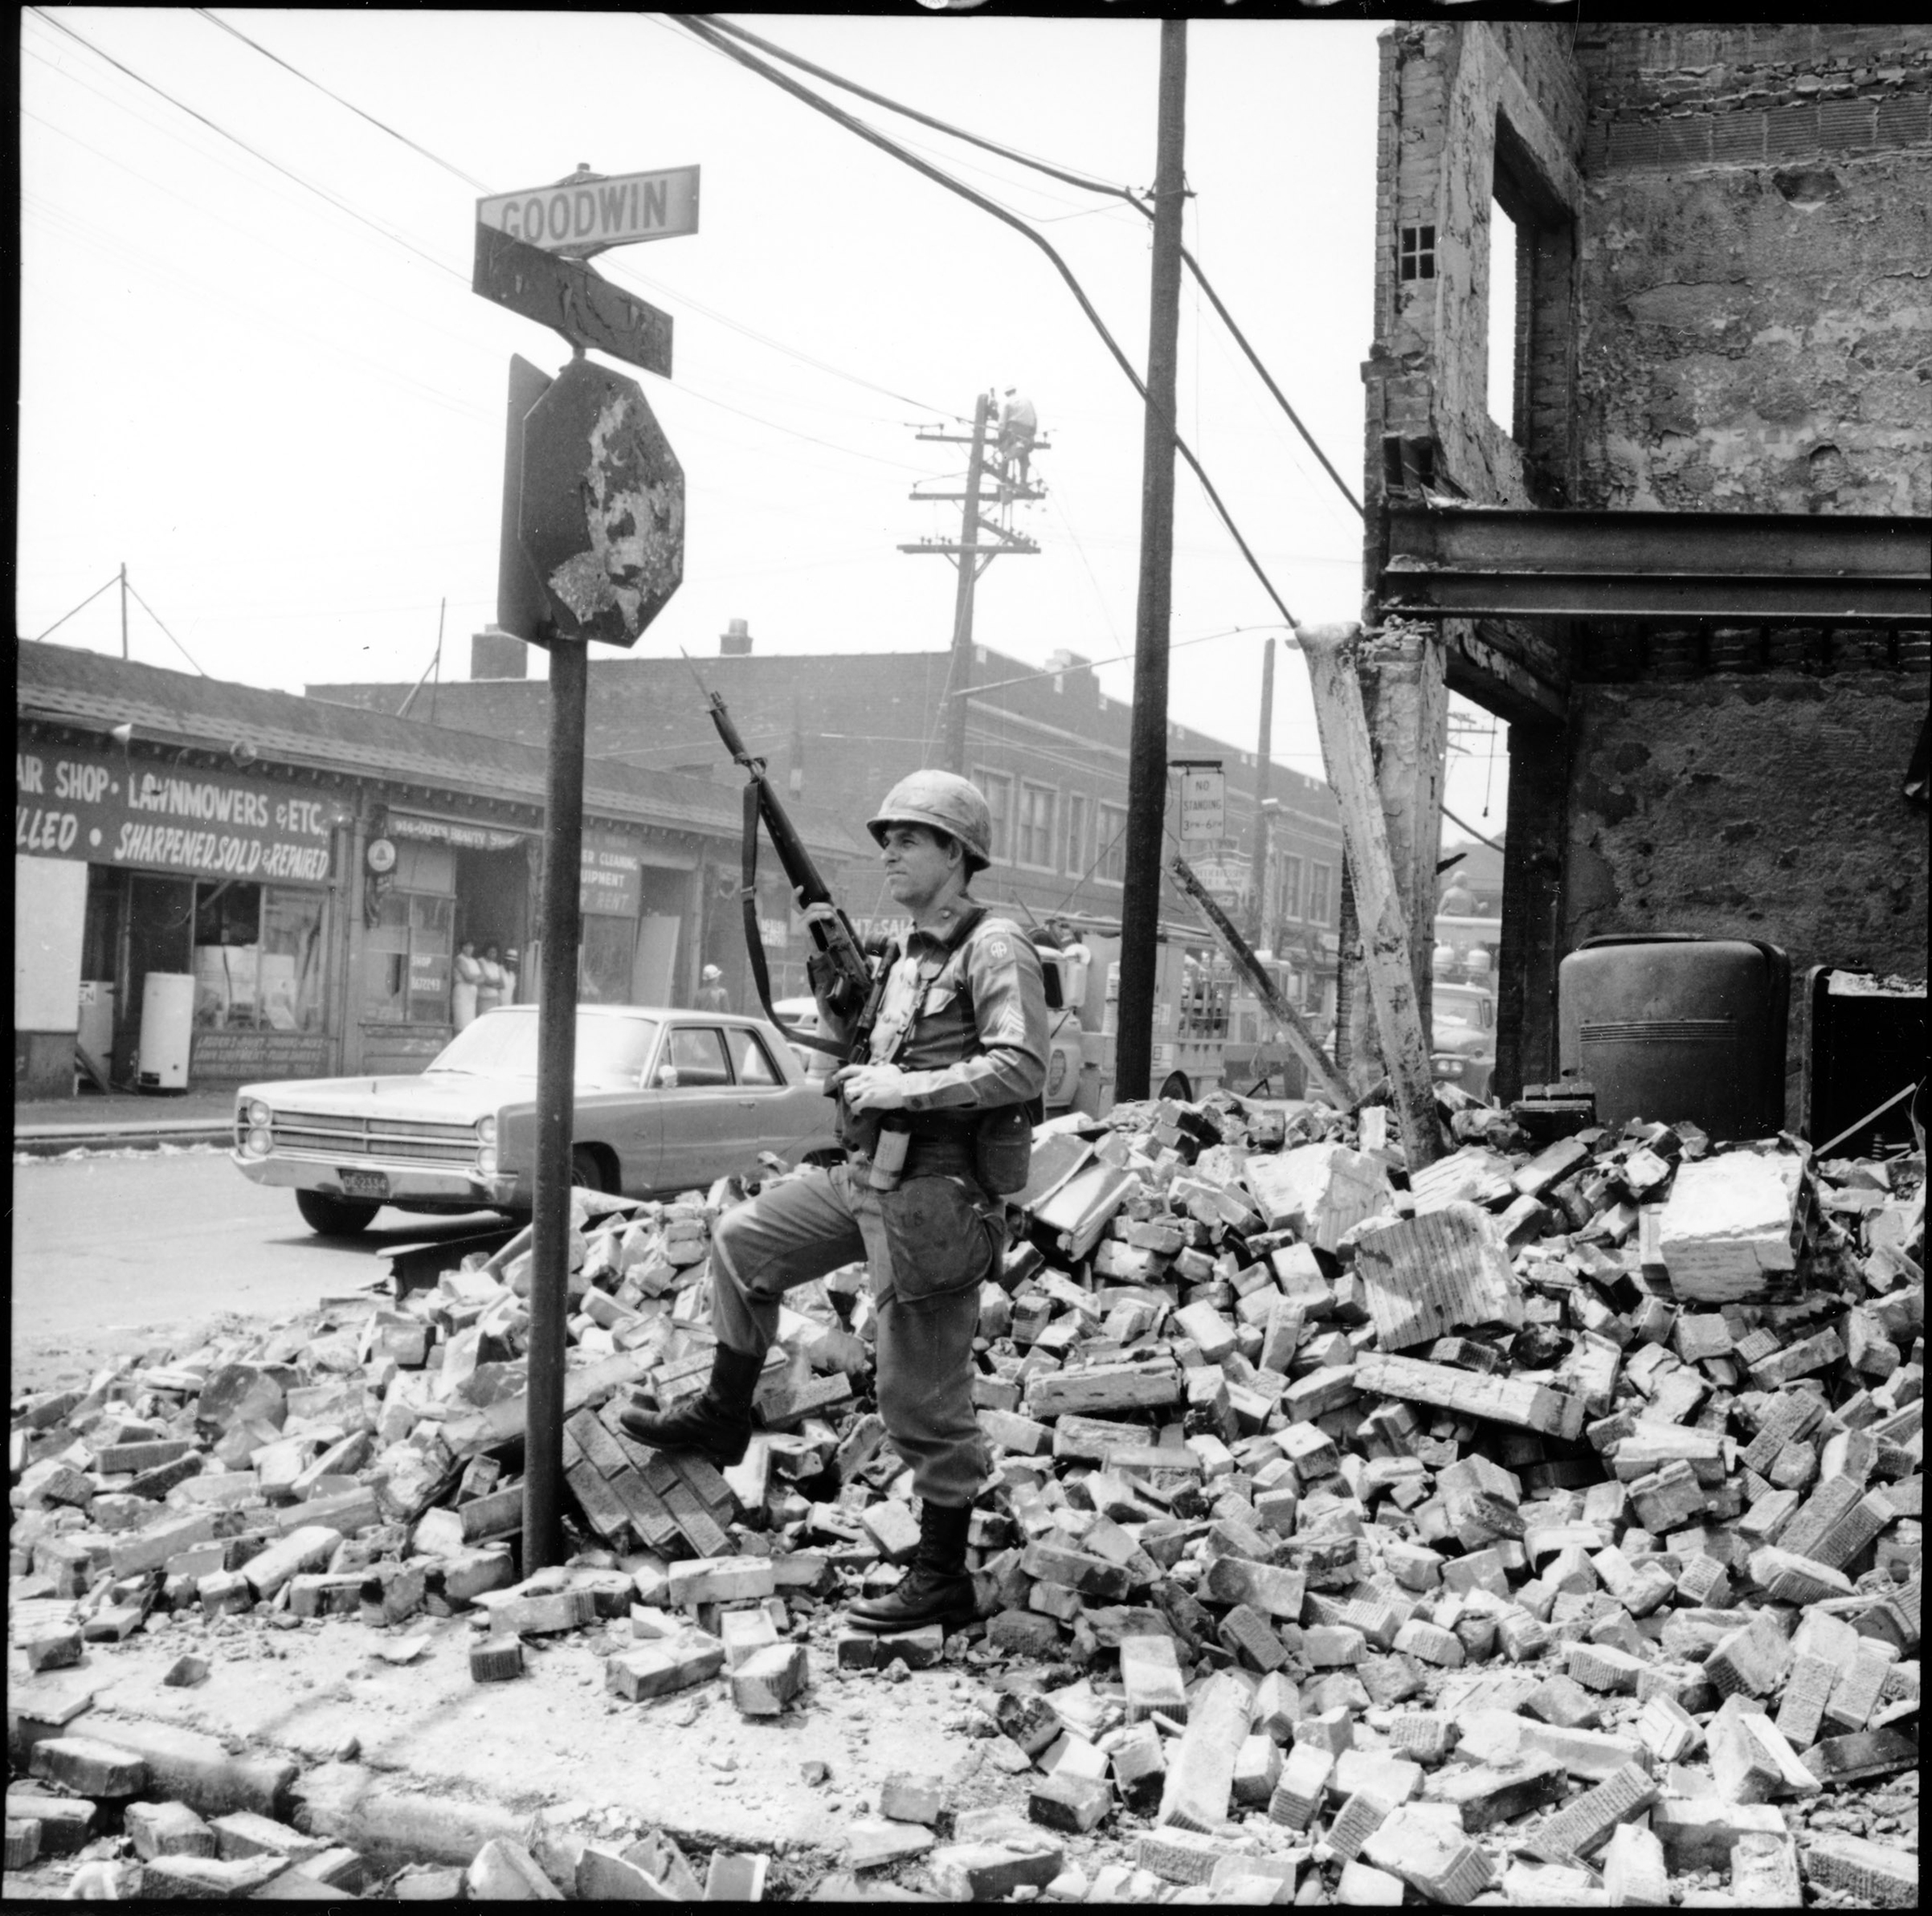 A member of the U.S. Airborne Division stands guard at the corner of Westminster and Goodwin Streets in Detroit during the violence and chaos that took place in July '67.